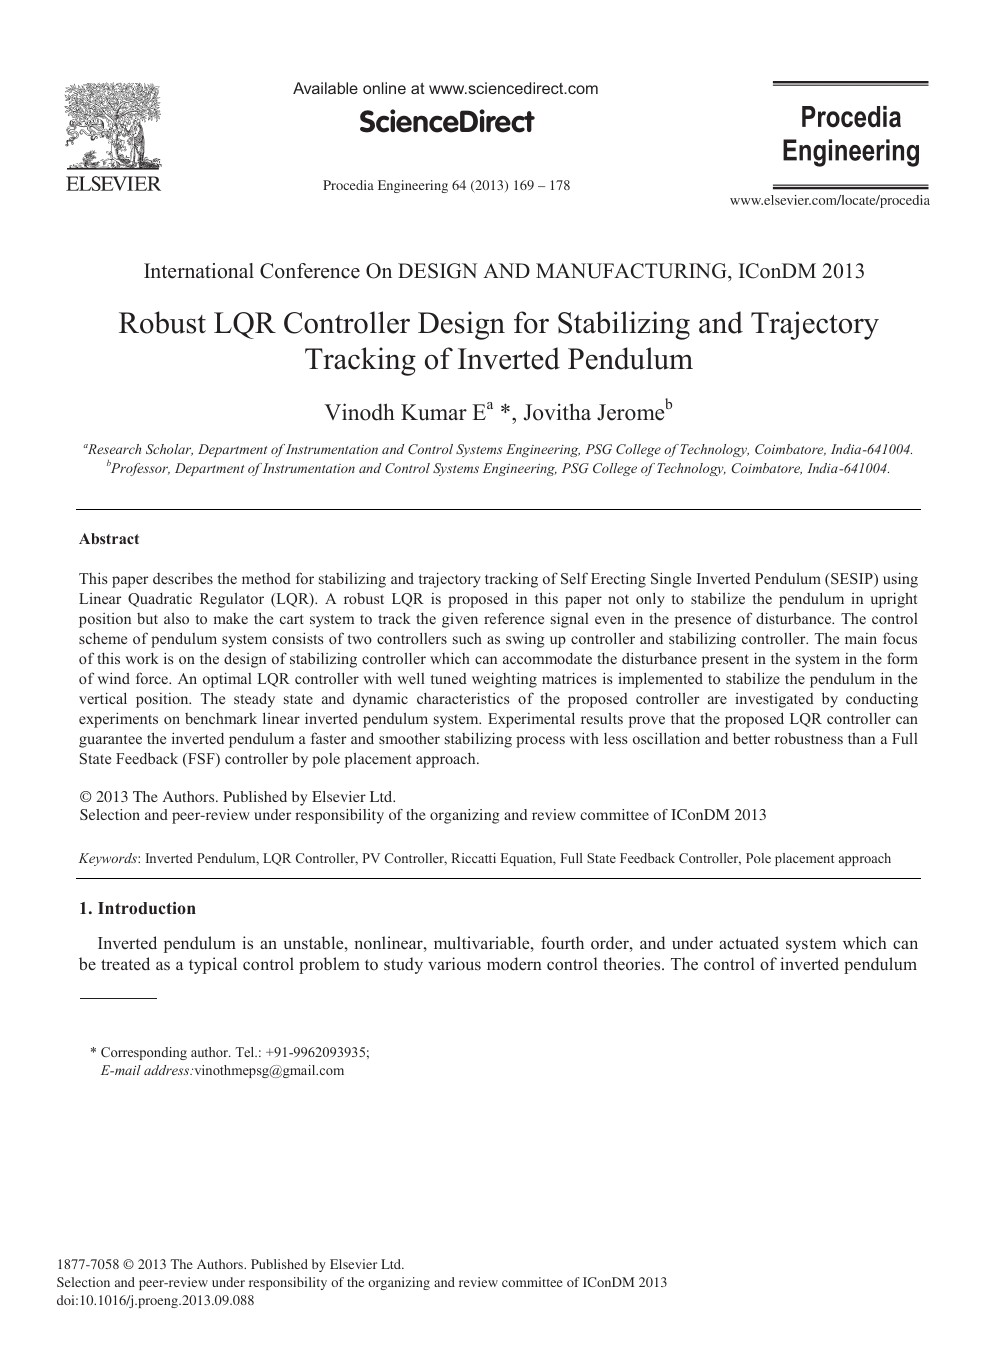 Robust LQR Controller Design for Stabilizing and Trajectory Tracking